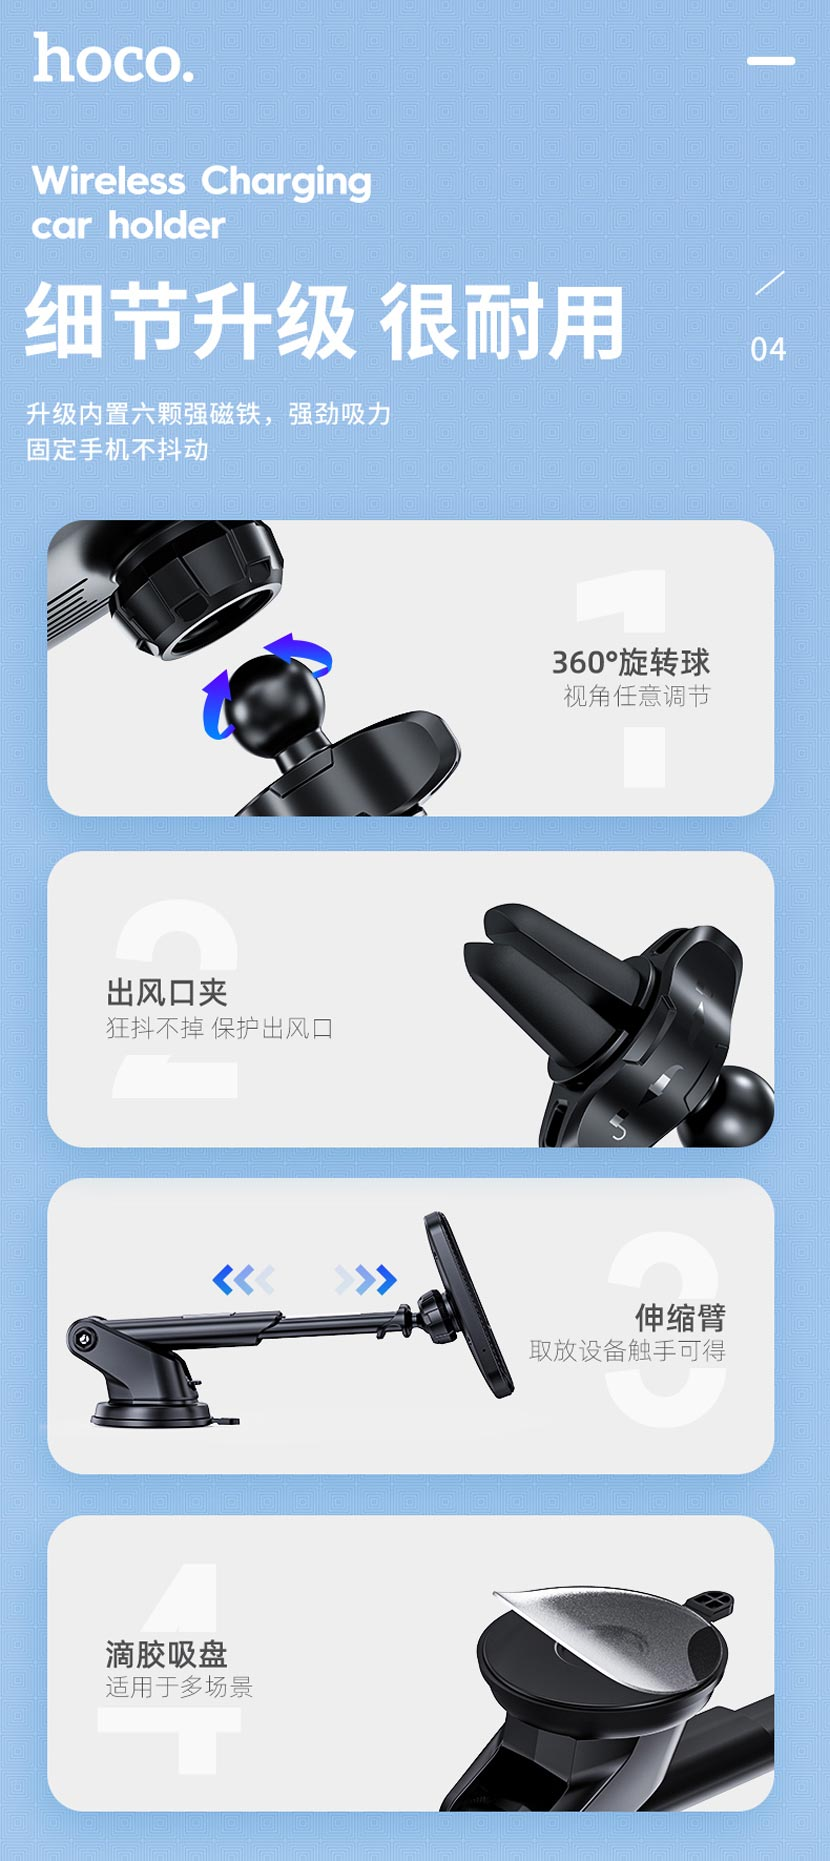 hoco news ca75 magnetic wireless charging car holder details cn